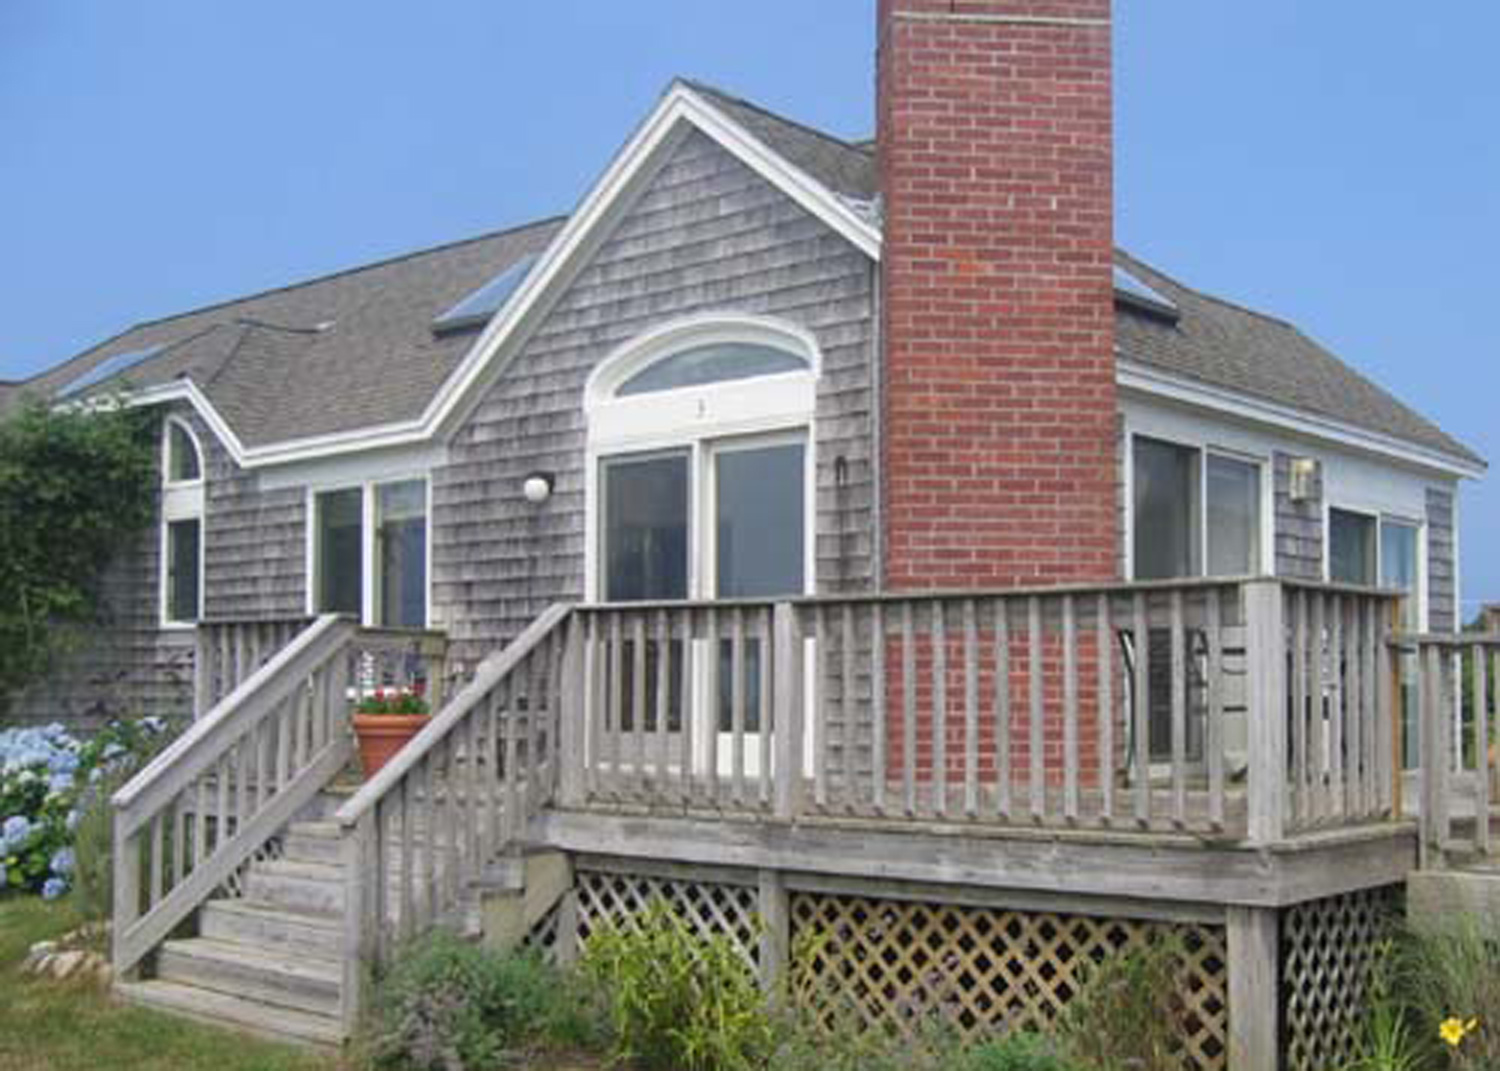 Aquinnah Martha's Vineyard MA Real Estate